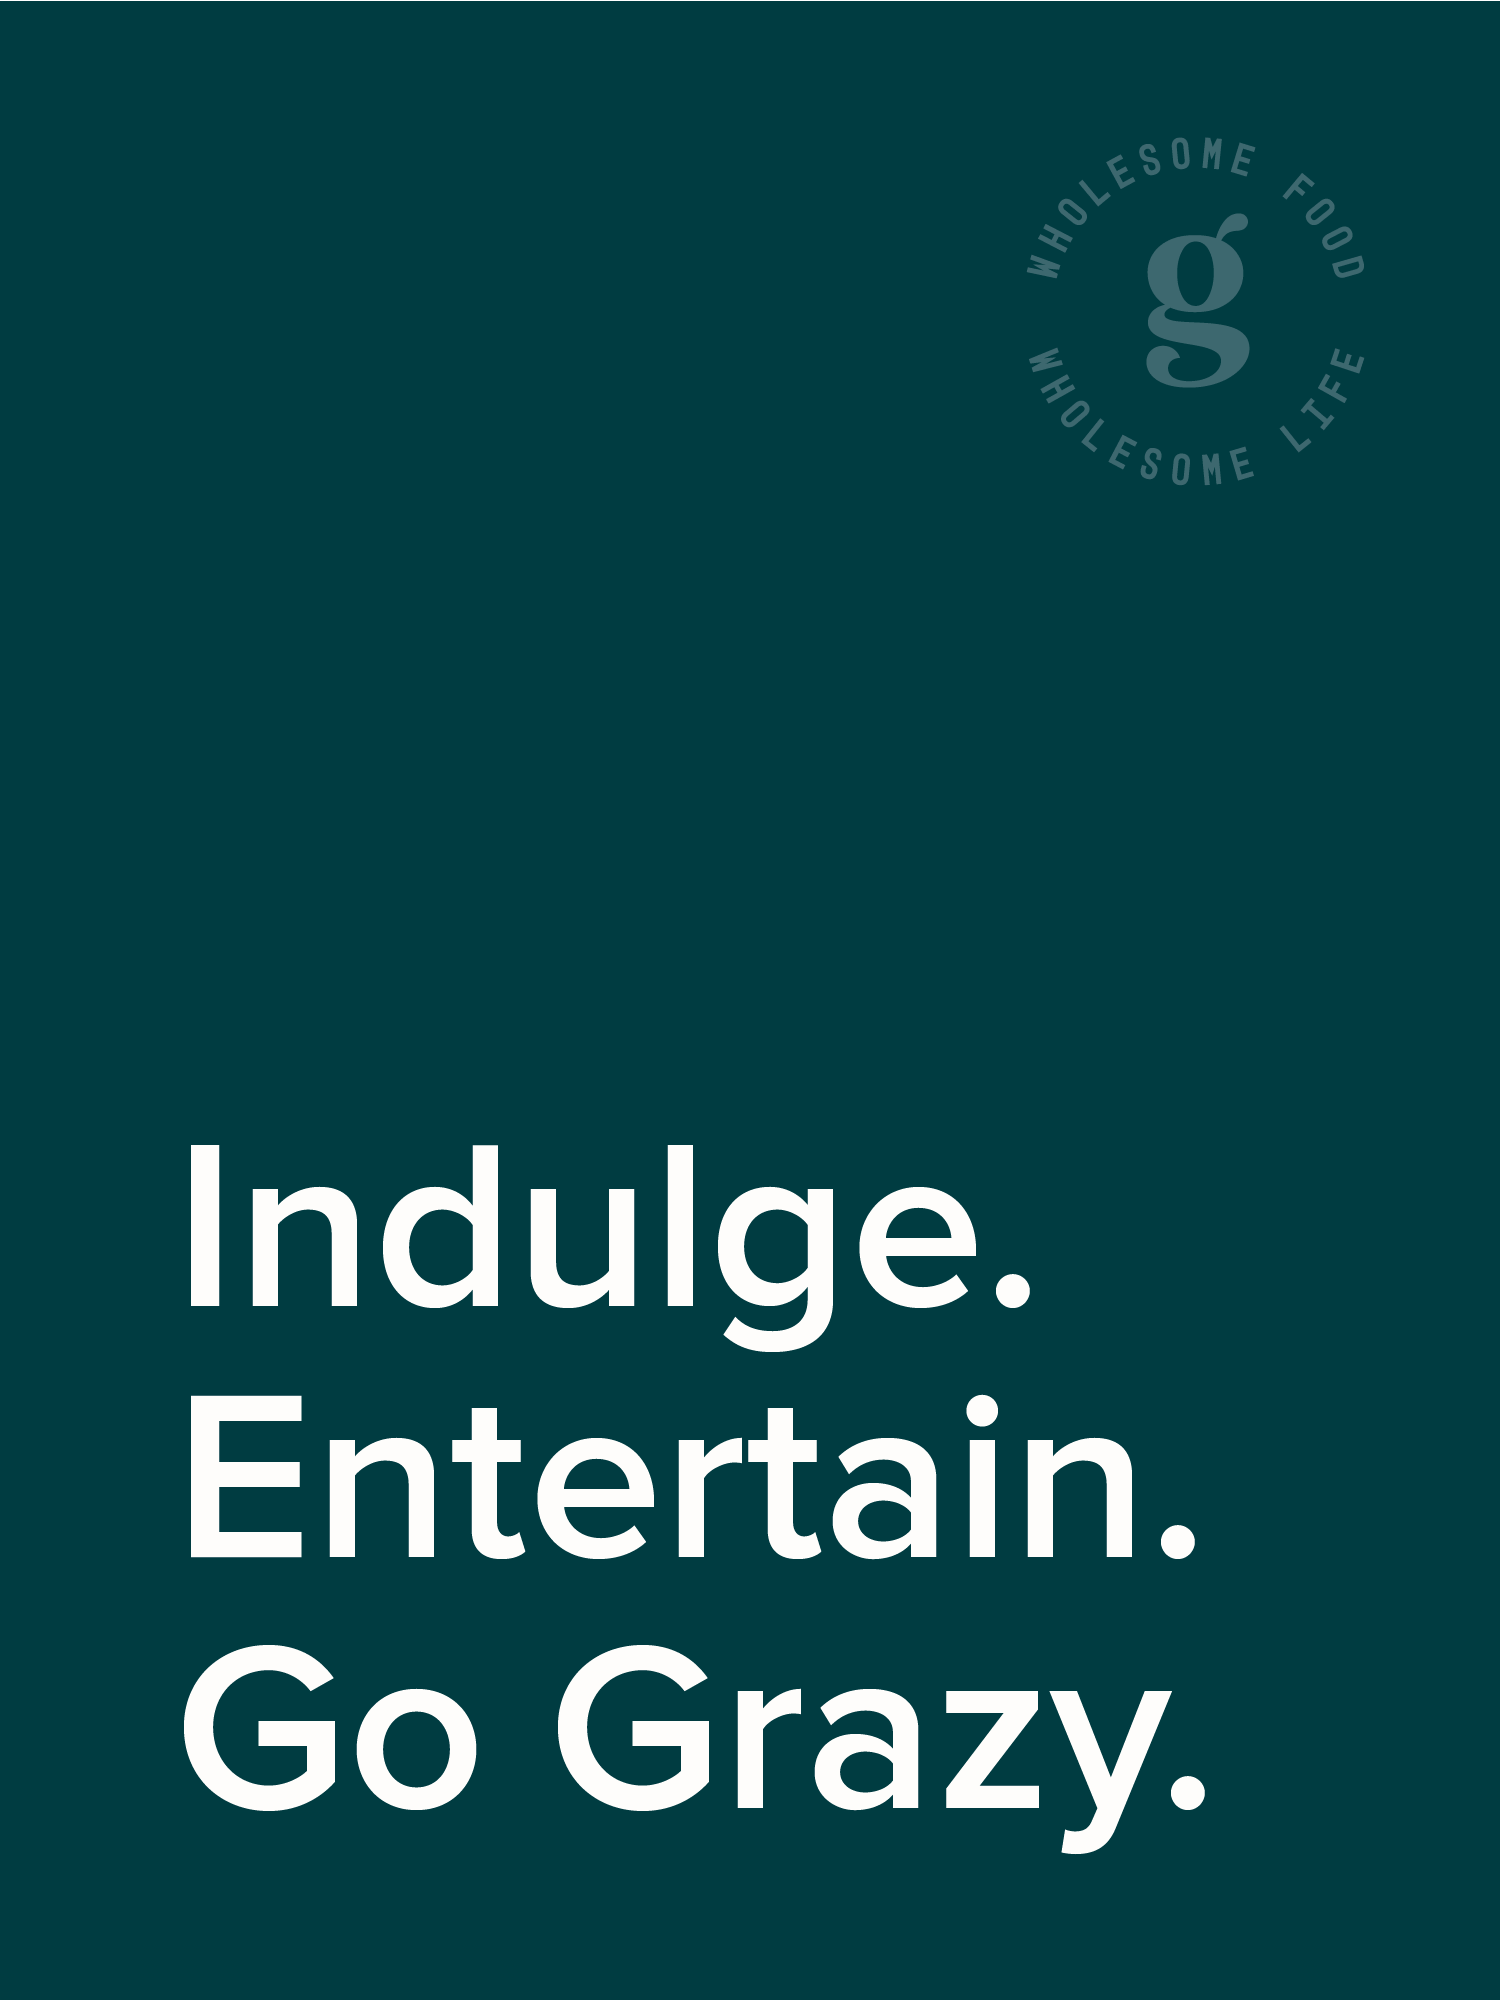 Bifold booklet cover that displays  'Indulge, Entertain. Go Grazy.' in white text on a teal background